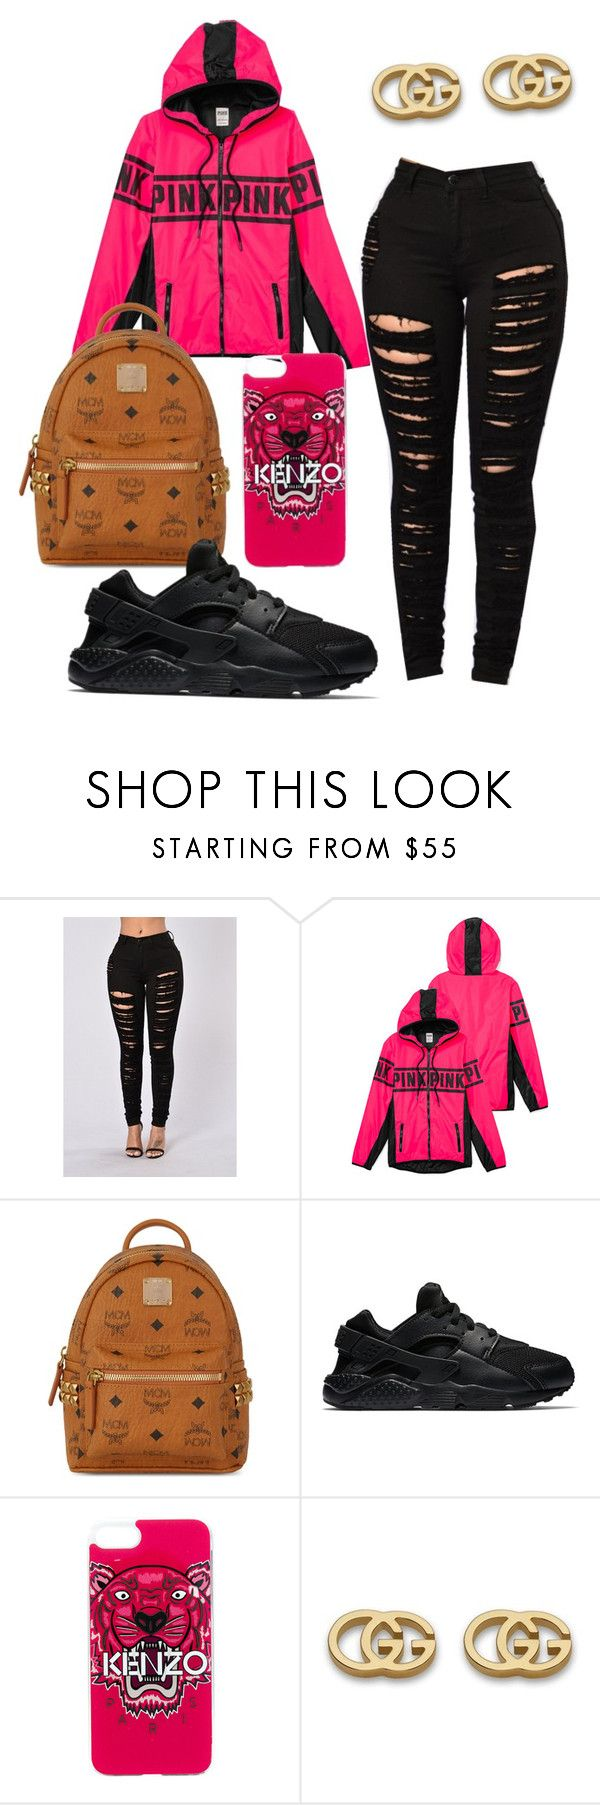 """Untitled #344"" by raevynn324375 ❤ liked on Polyvore featuring MCM, NIKE, Kenzo and Gucci"